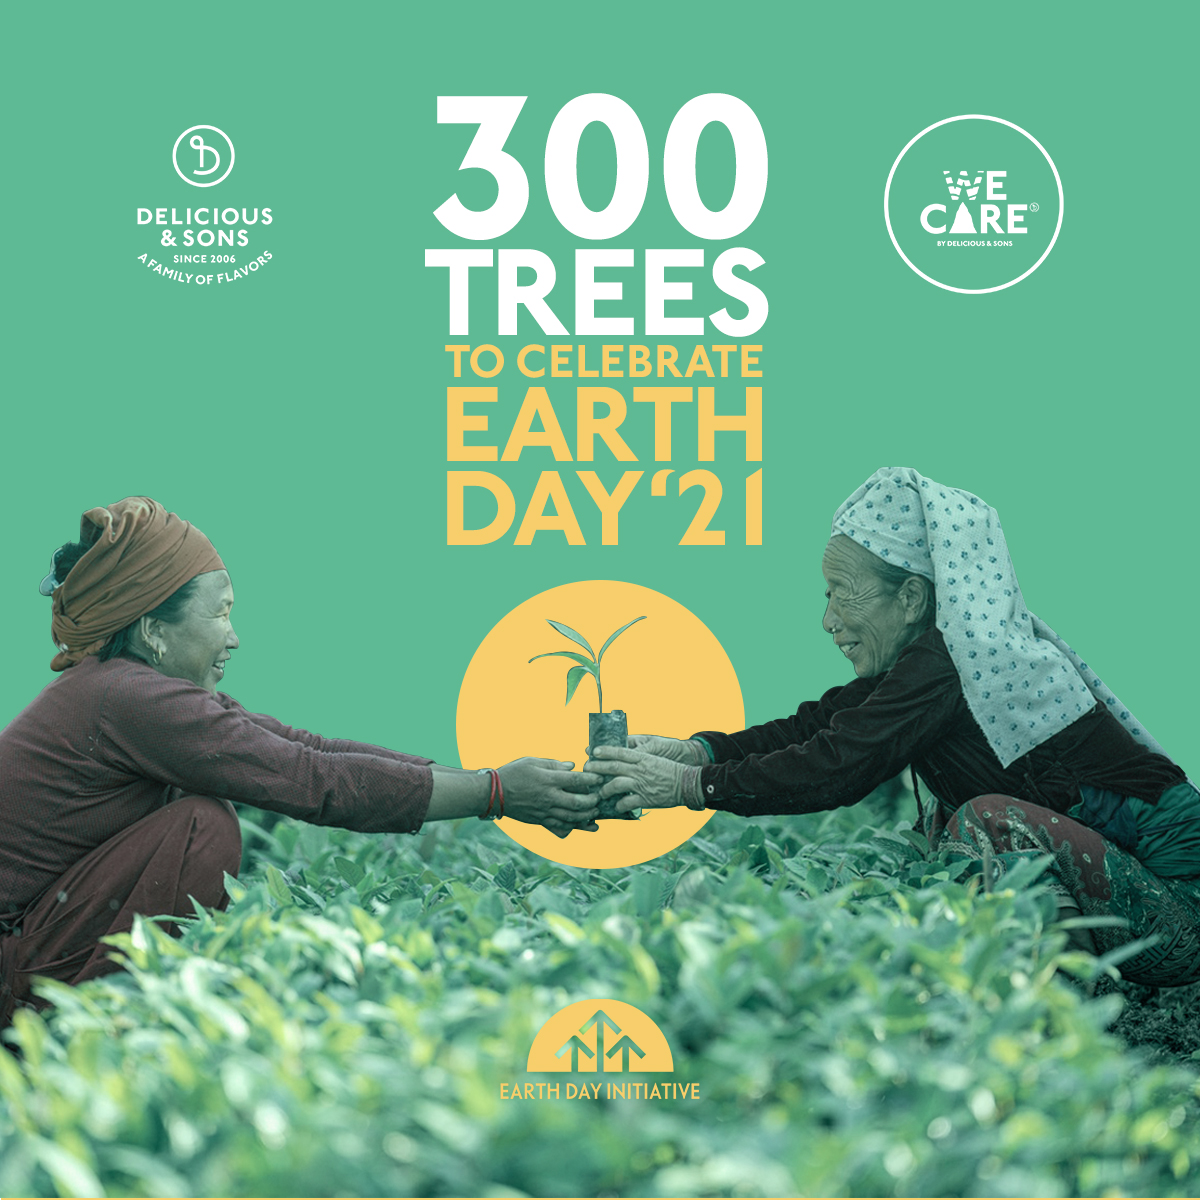 300 Trees for Earth Day 2021 — Delicious & Sons